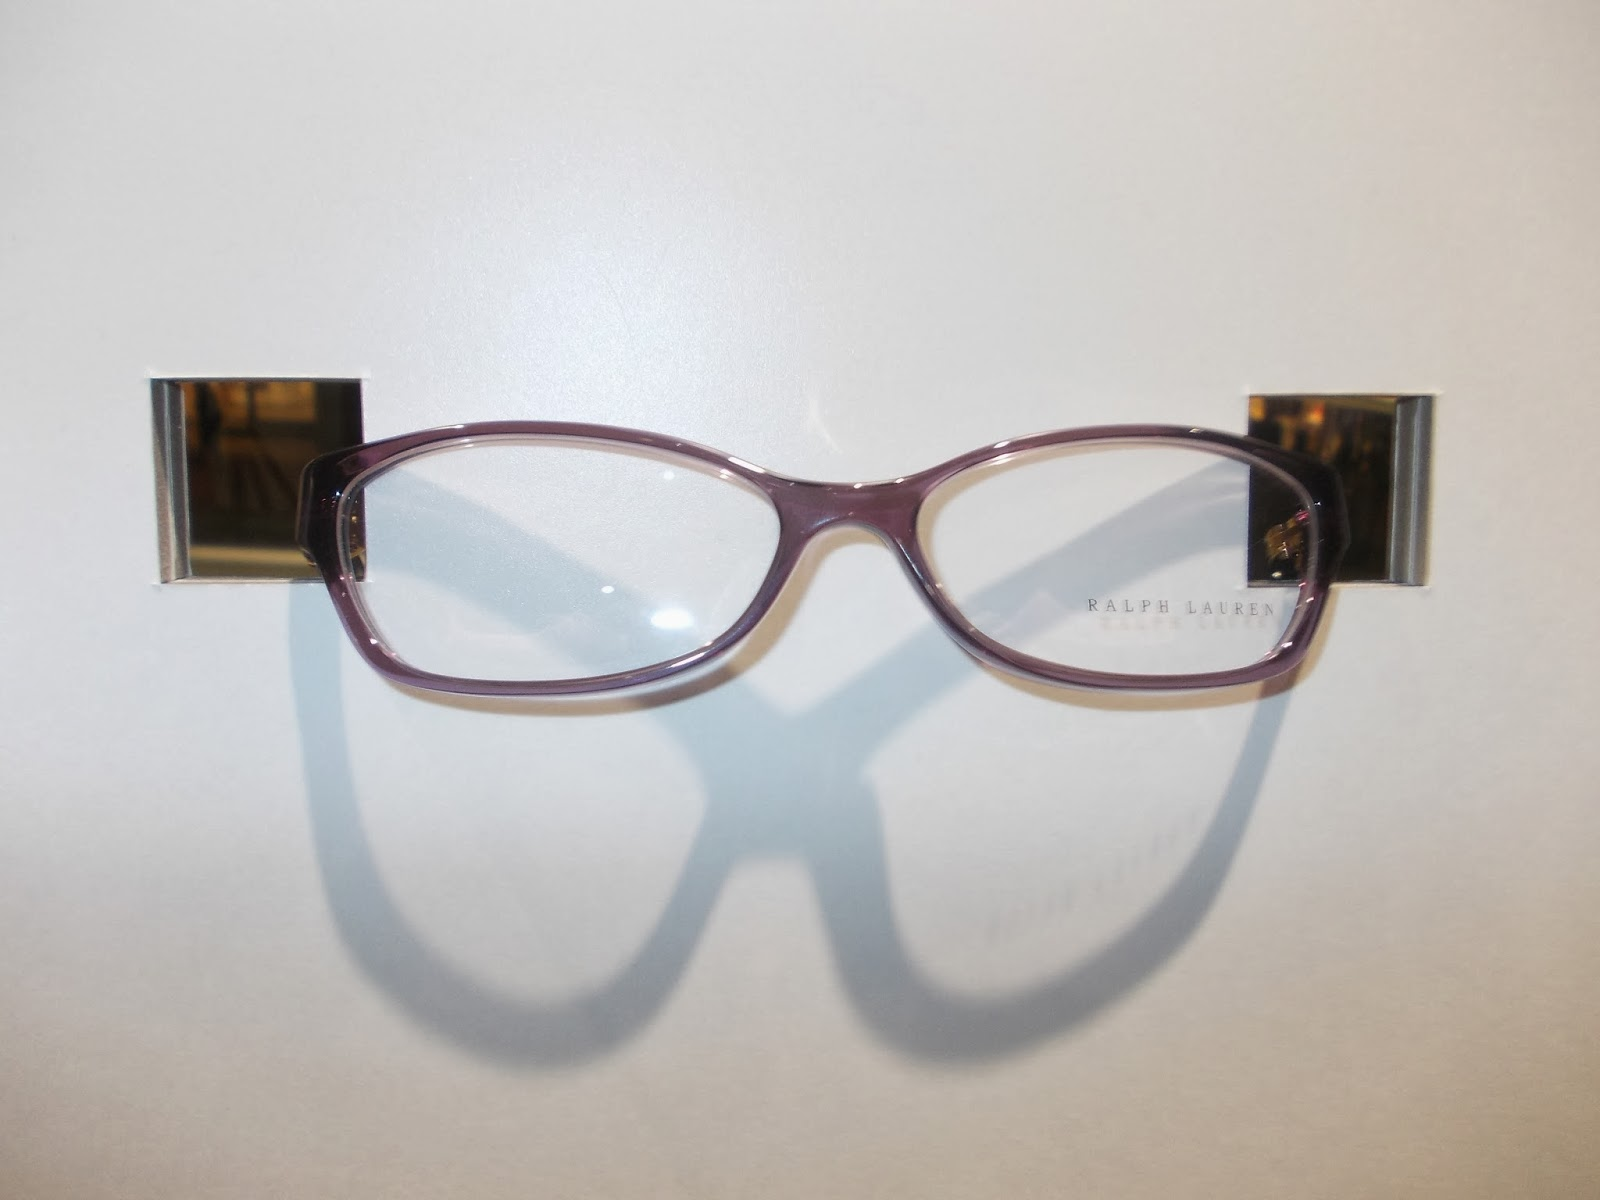 Glasses Frames Vision Express : Fashion Notes by Cris: Ralph Lauren Eyewear at Vision Express